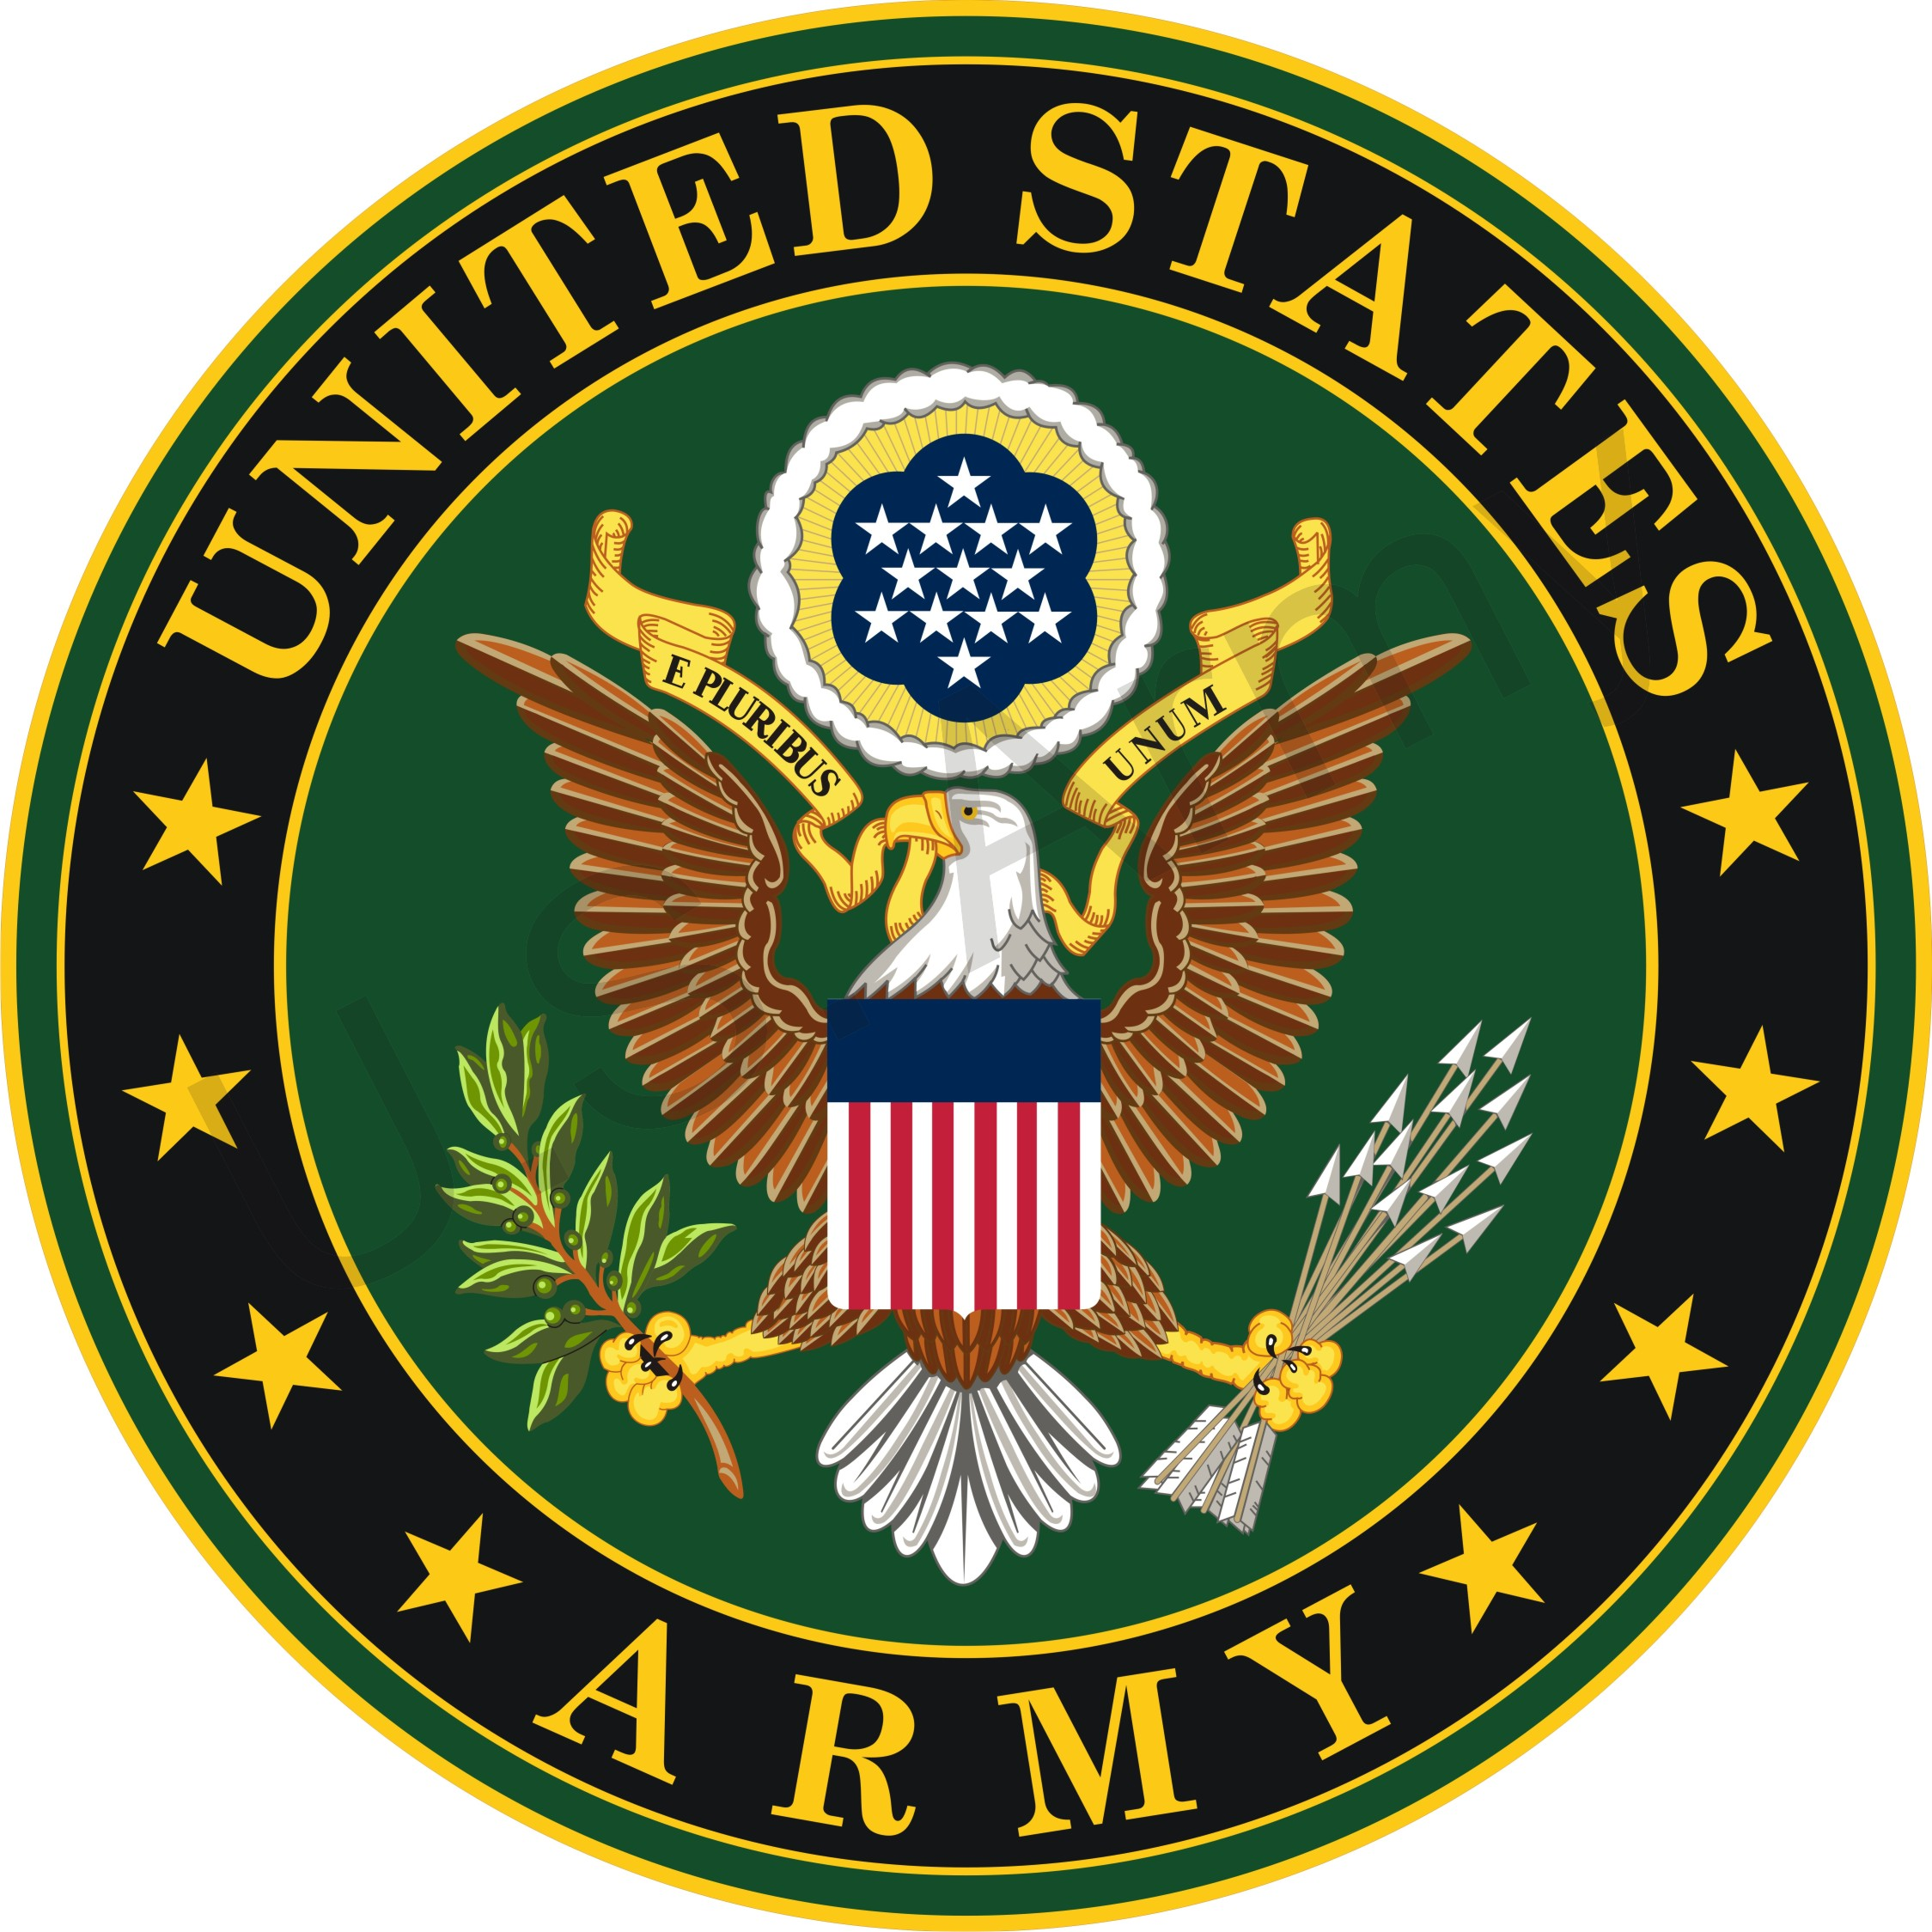 United states army clipart clipart black and white United states army clipart - ClipartFest clipart black and white